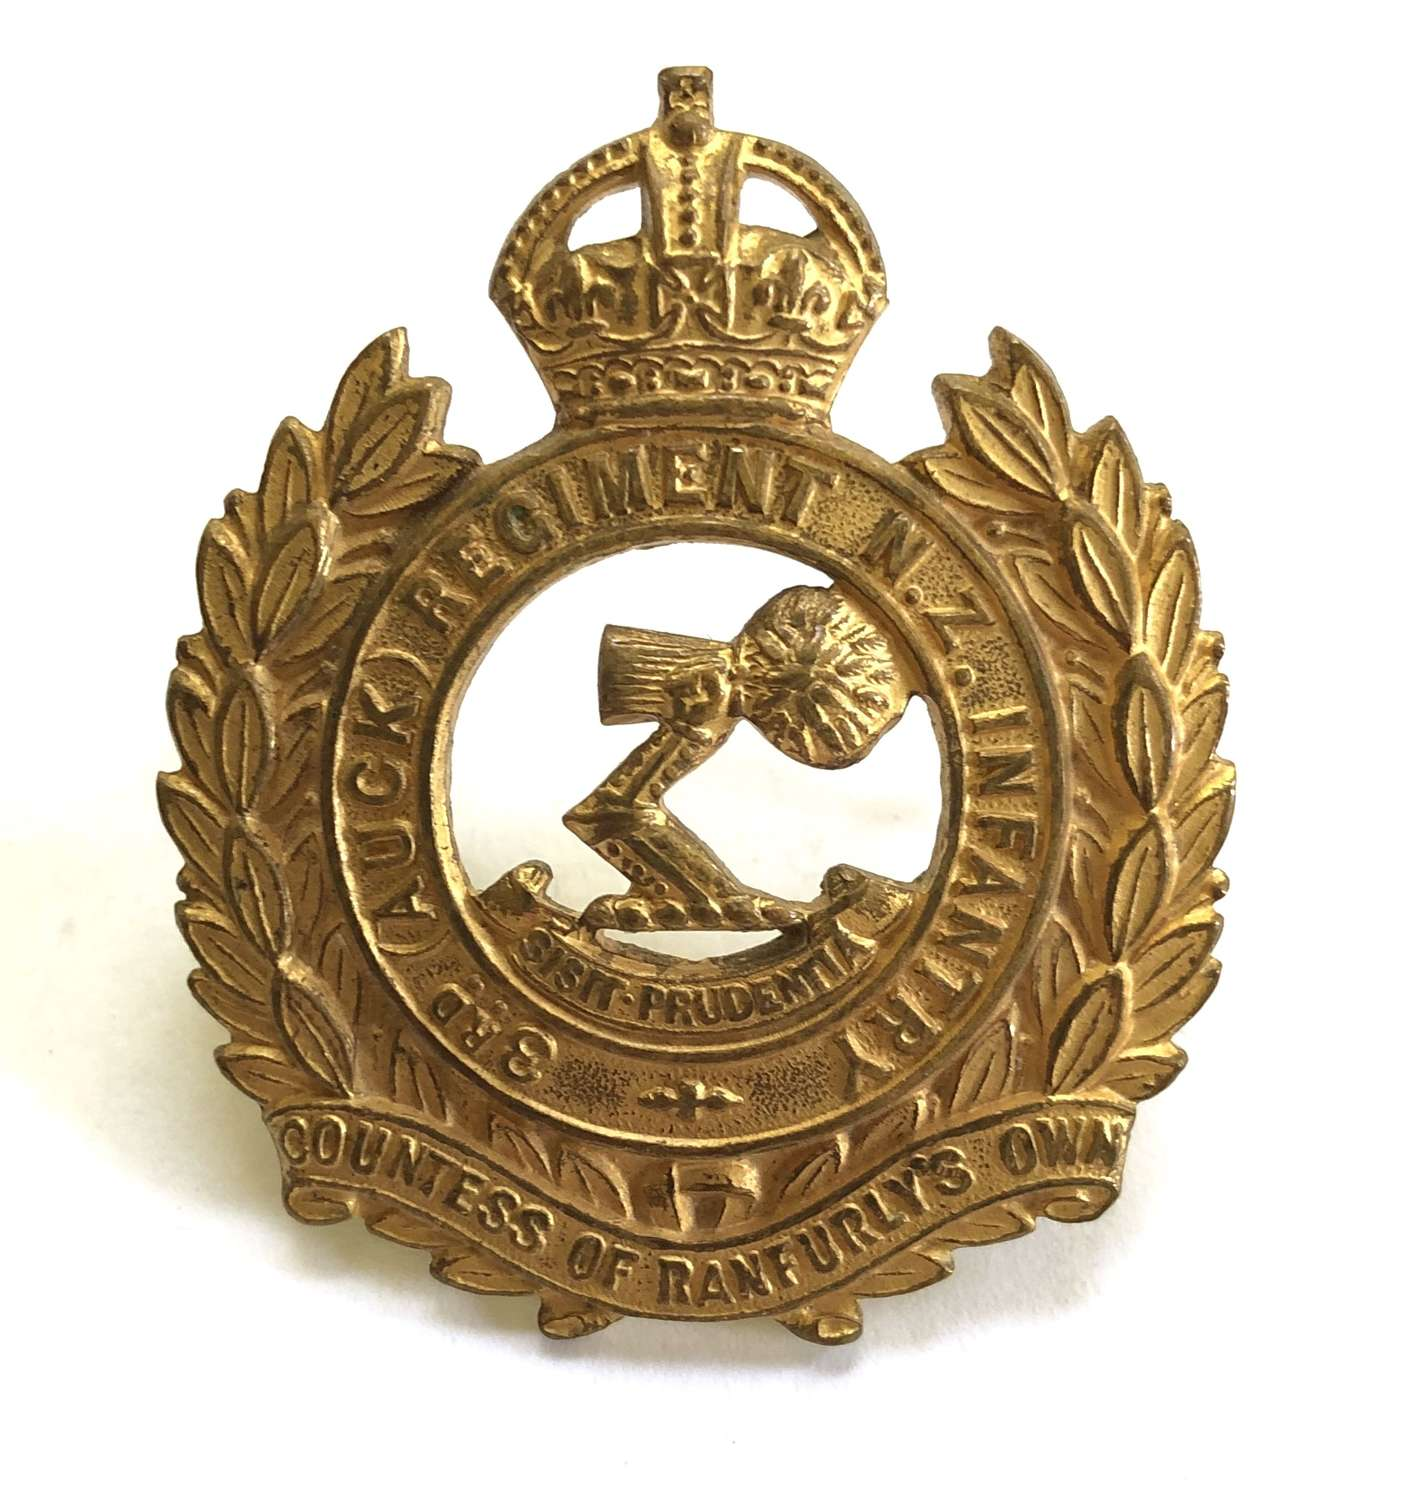 3rd Auckland Regiment of NZ Infantry Officer's cap badge c1912-21